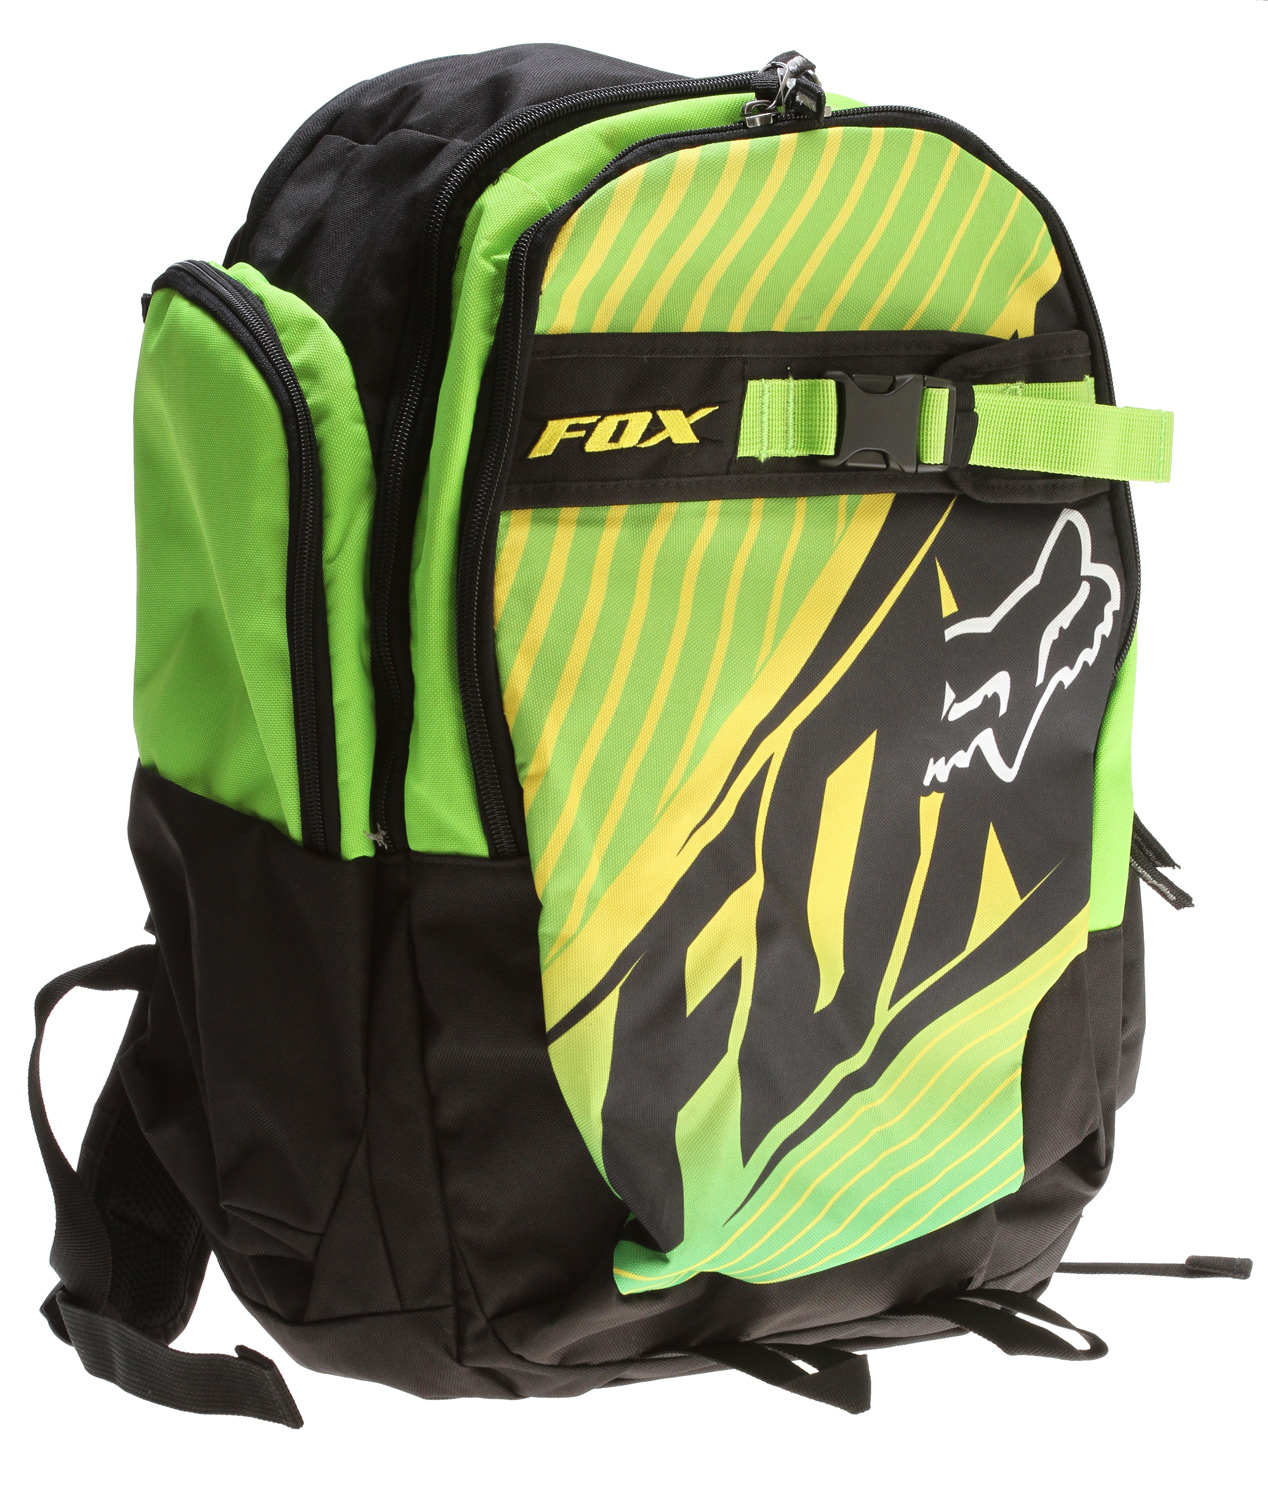 "Motorsports Key Features of the Fox Step Up Backpack: 600D polyester Multi compartment bag Fleece lined sunglass pocket Air mesh back panel with ergonomic shoulder straps Water bottle fits in side pocket Padded laptop sleeve Organizer pockets Skate strap system 19.5"" x 12.5"" x 9"" - $41.95"